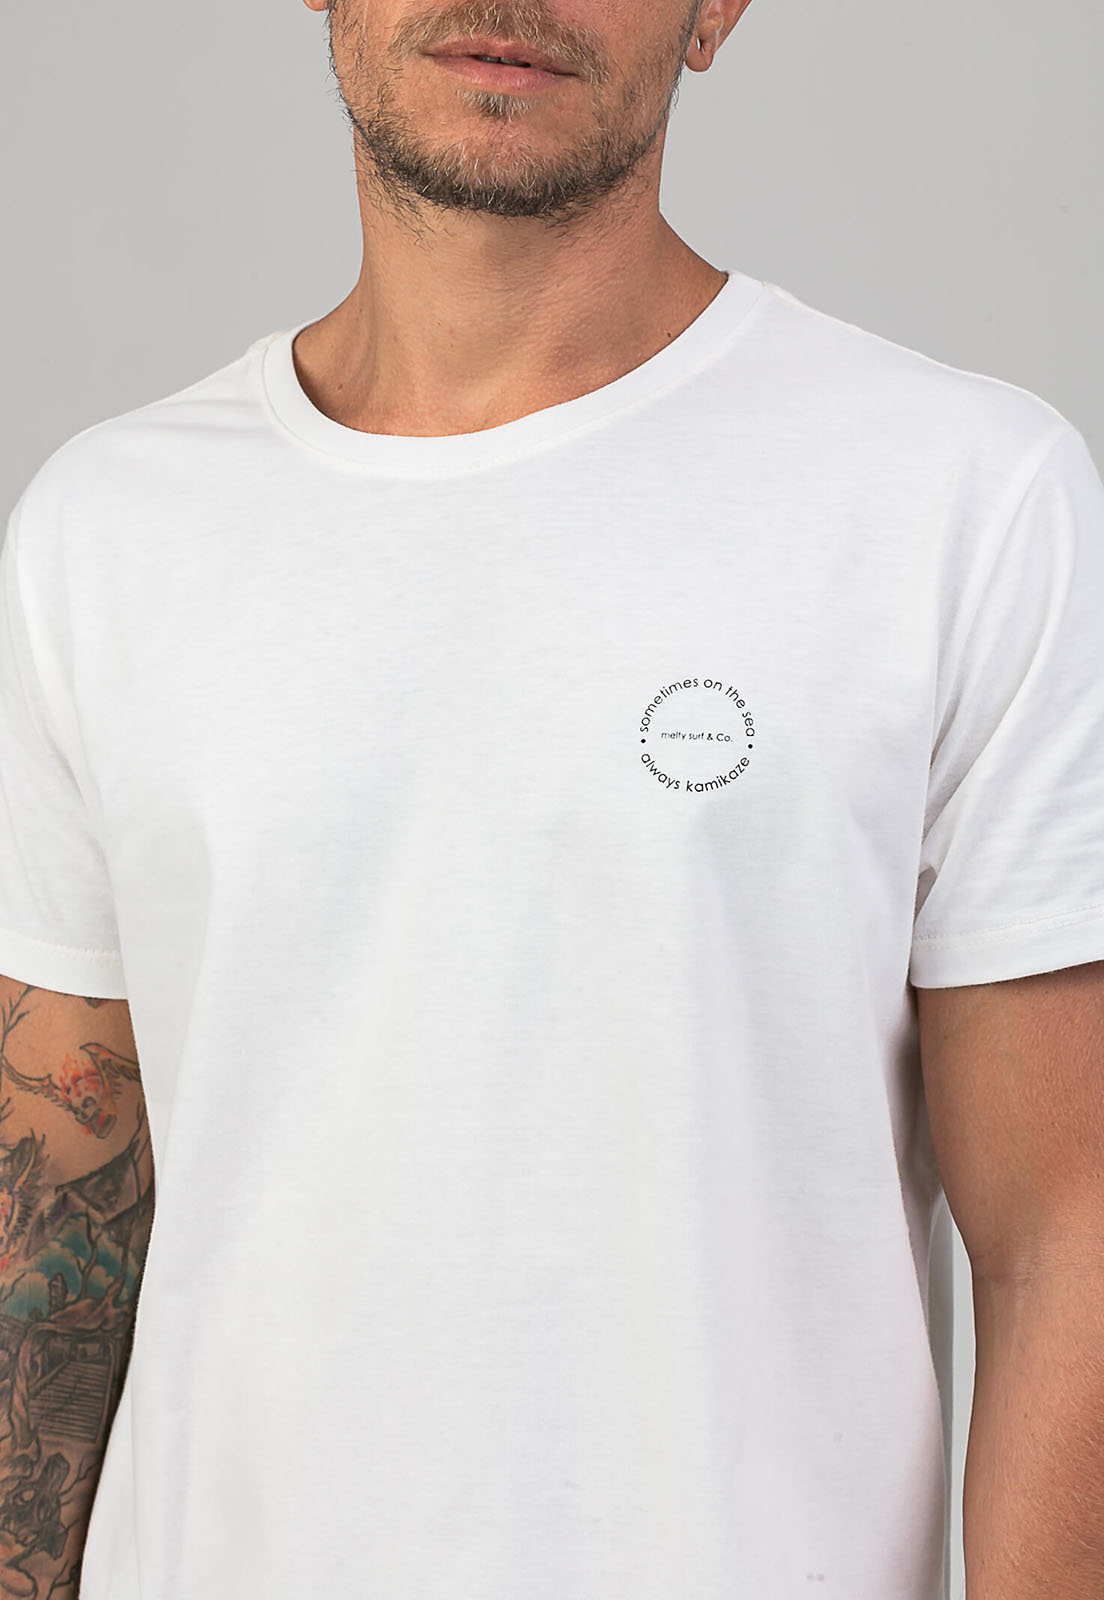 T-Shirt Kamicaze Rider off white melty  - melty surf & Co.